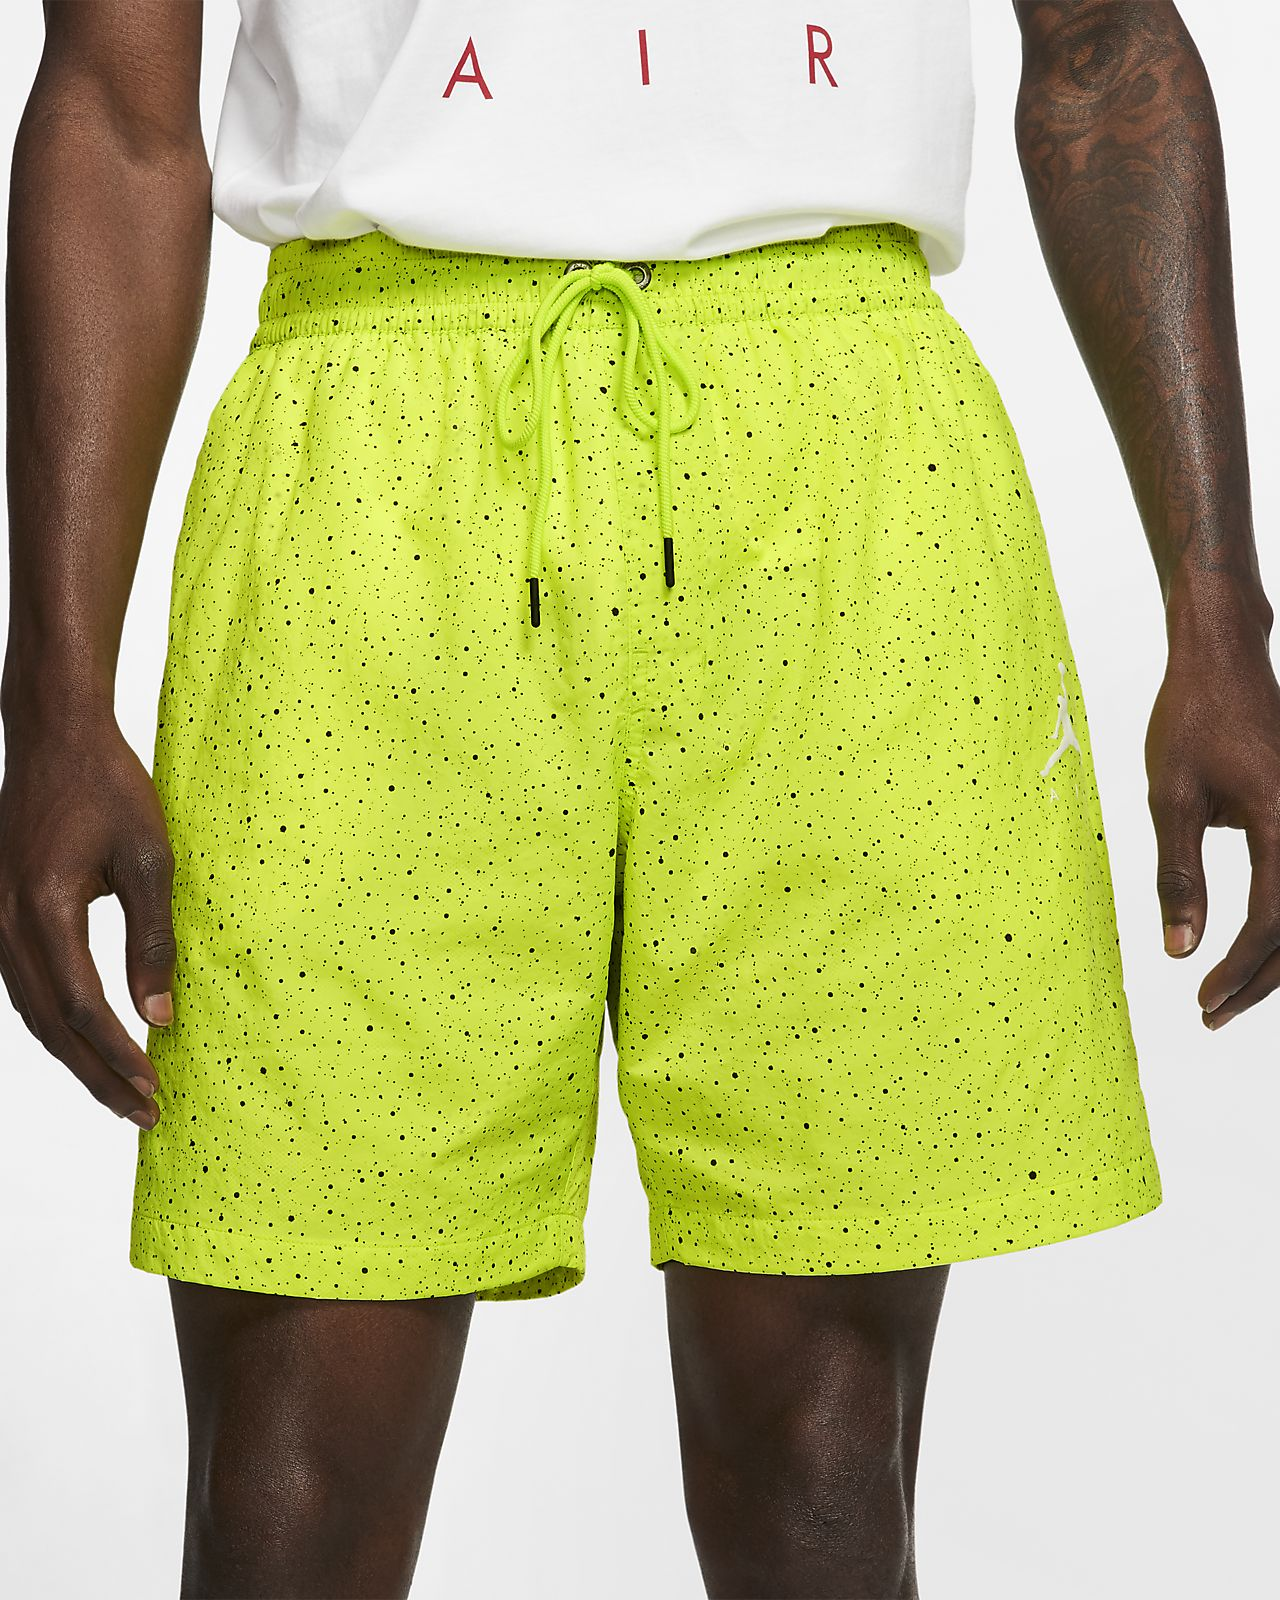 0c069454d749b3 Jordan Jumpman Cement Poolside Men s 18cm approx. Shorts. Nike.com LU